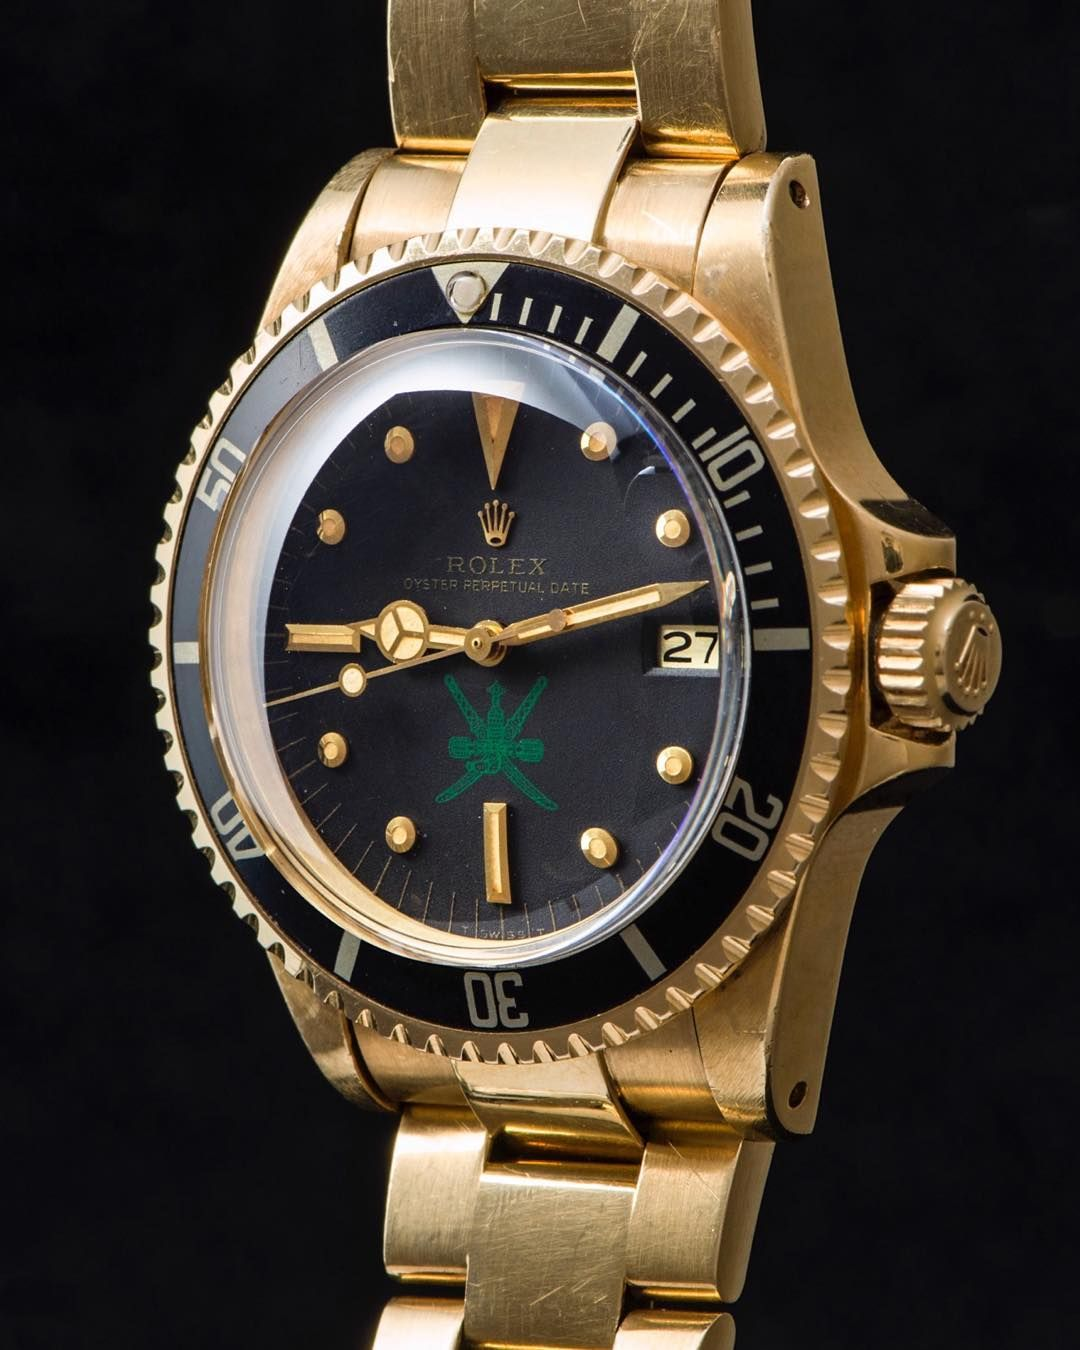 Wrist watch price in oman -  1680 8 Oman Dial Commissioned By Asprey Credit Watchesinrome_official Rolex